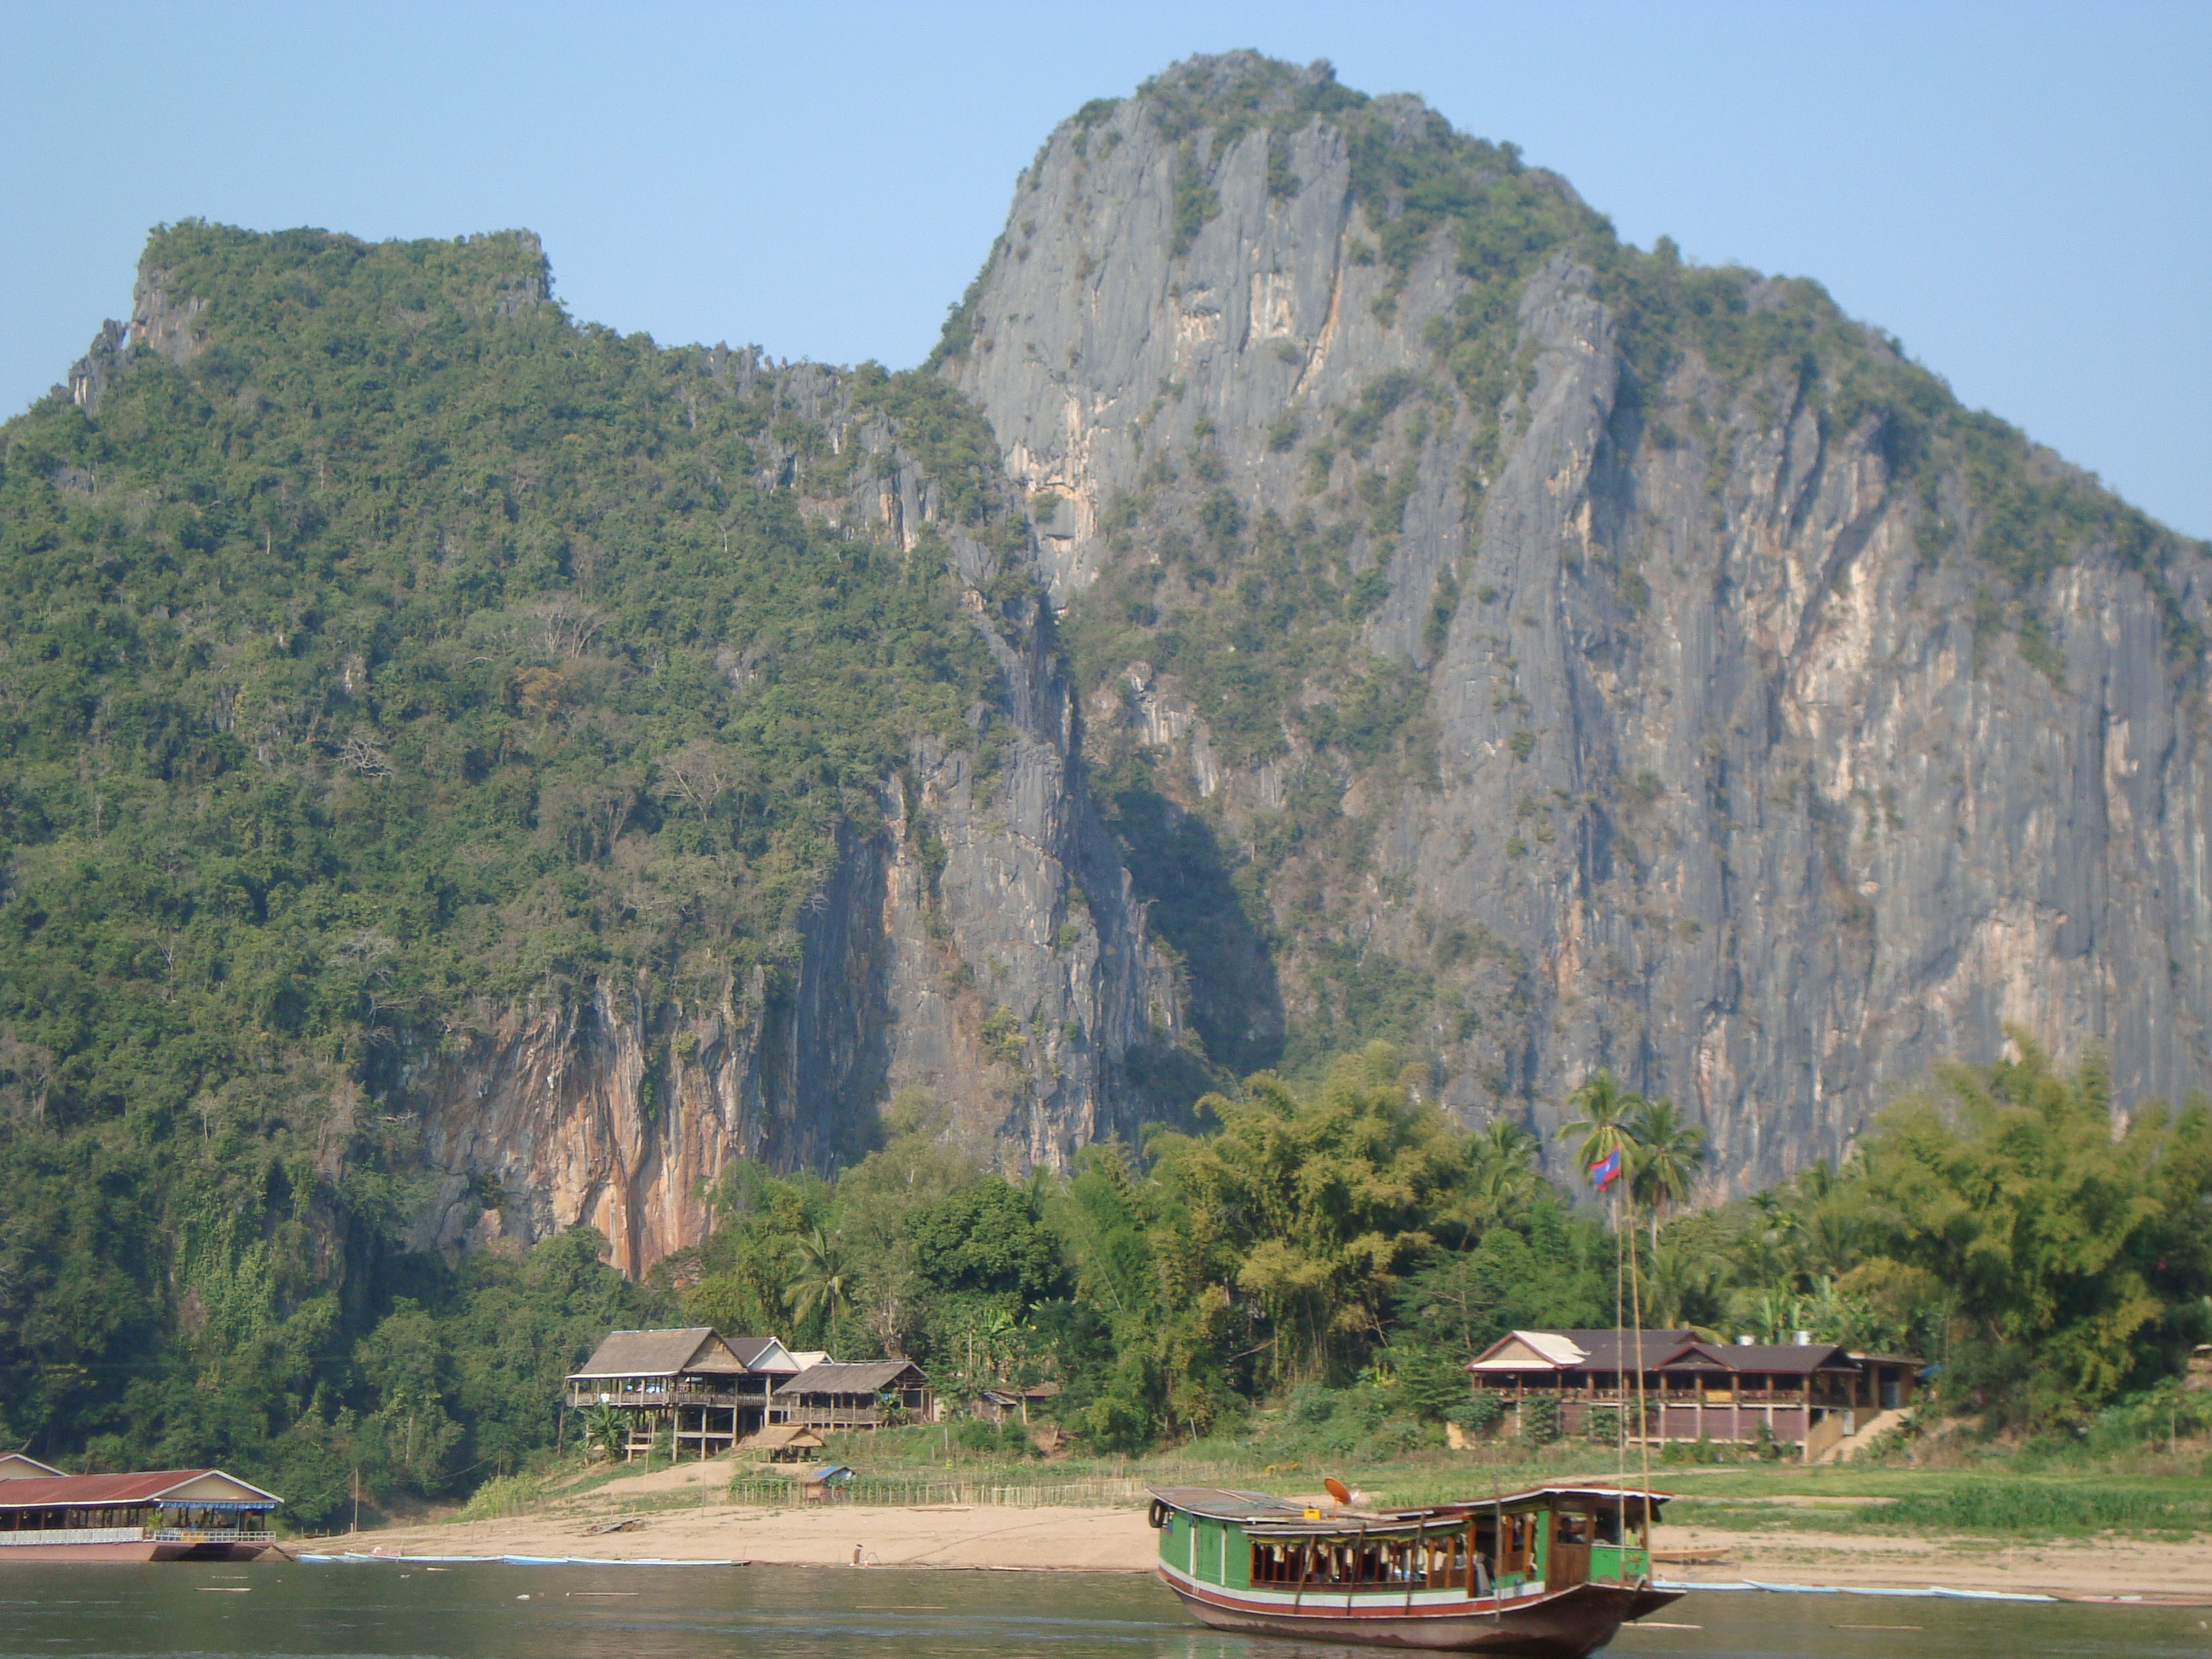 View along the Mekong River in Laos